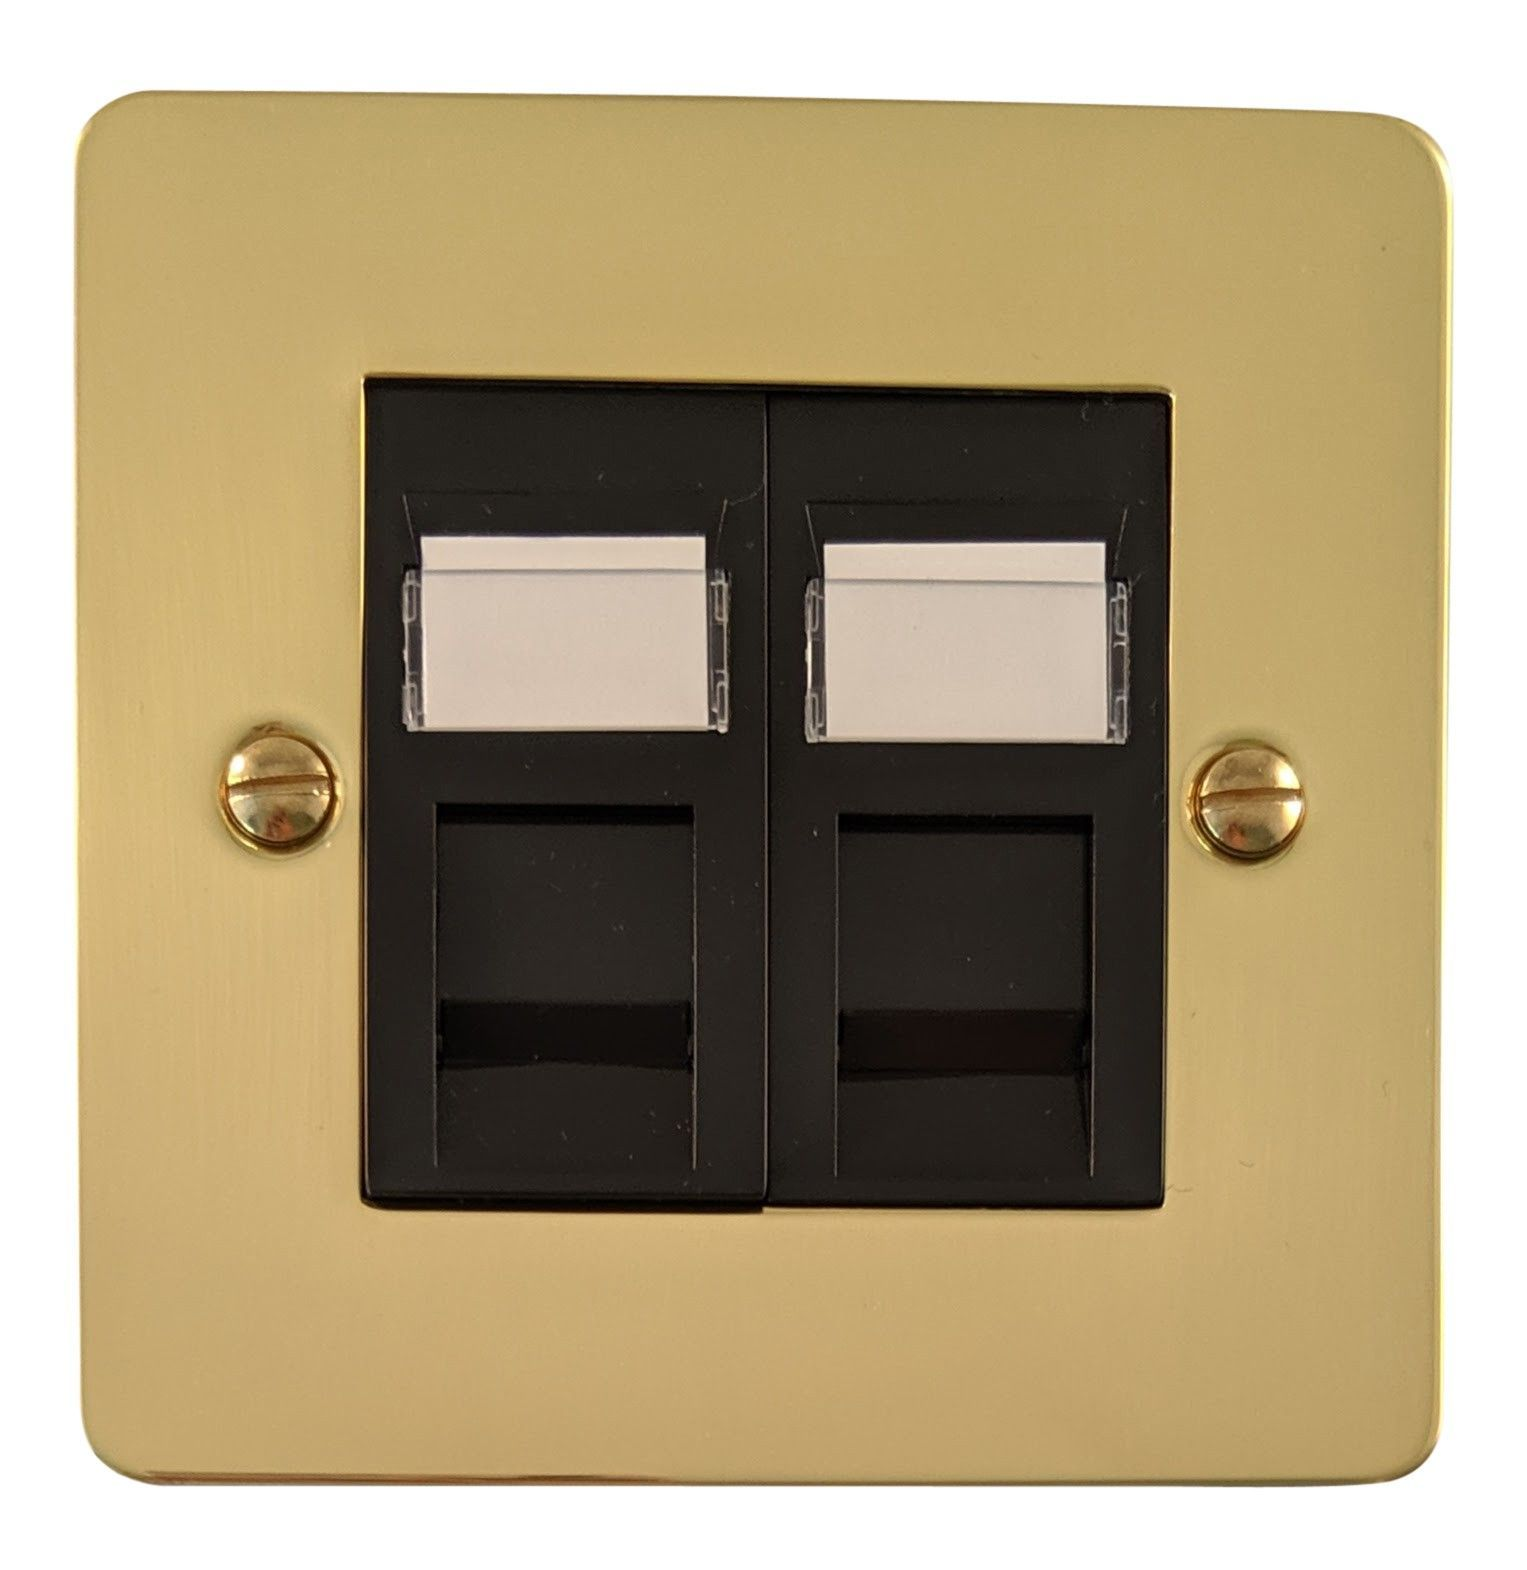 G&H FB64B Flat Plate Polished Brass 2 Gang Slave BT Telephone Socket